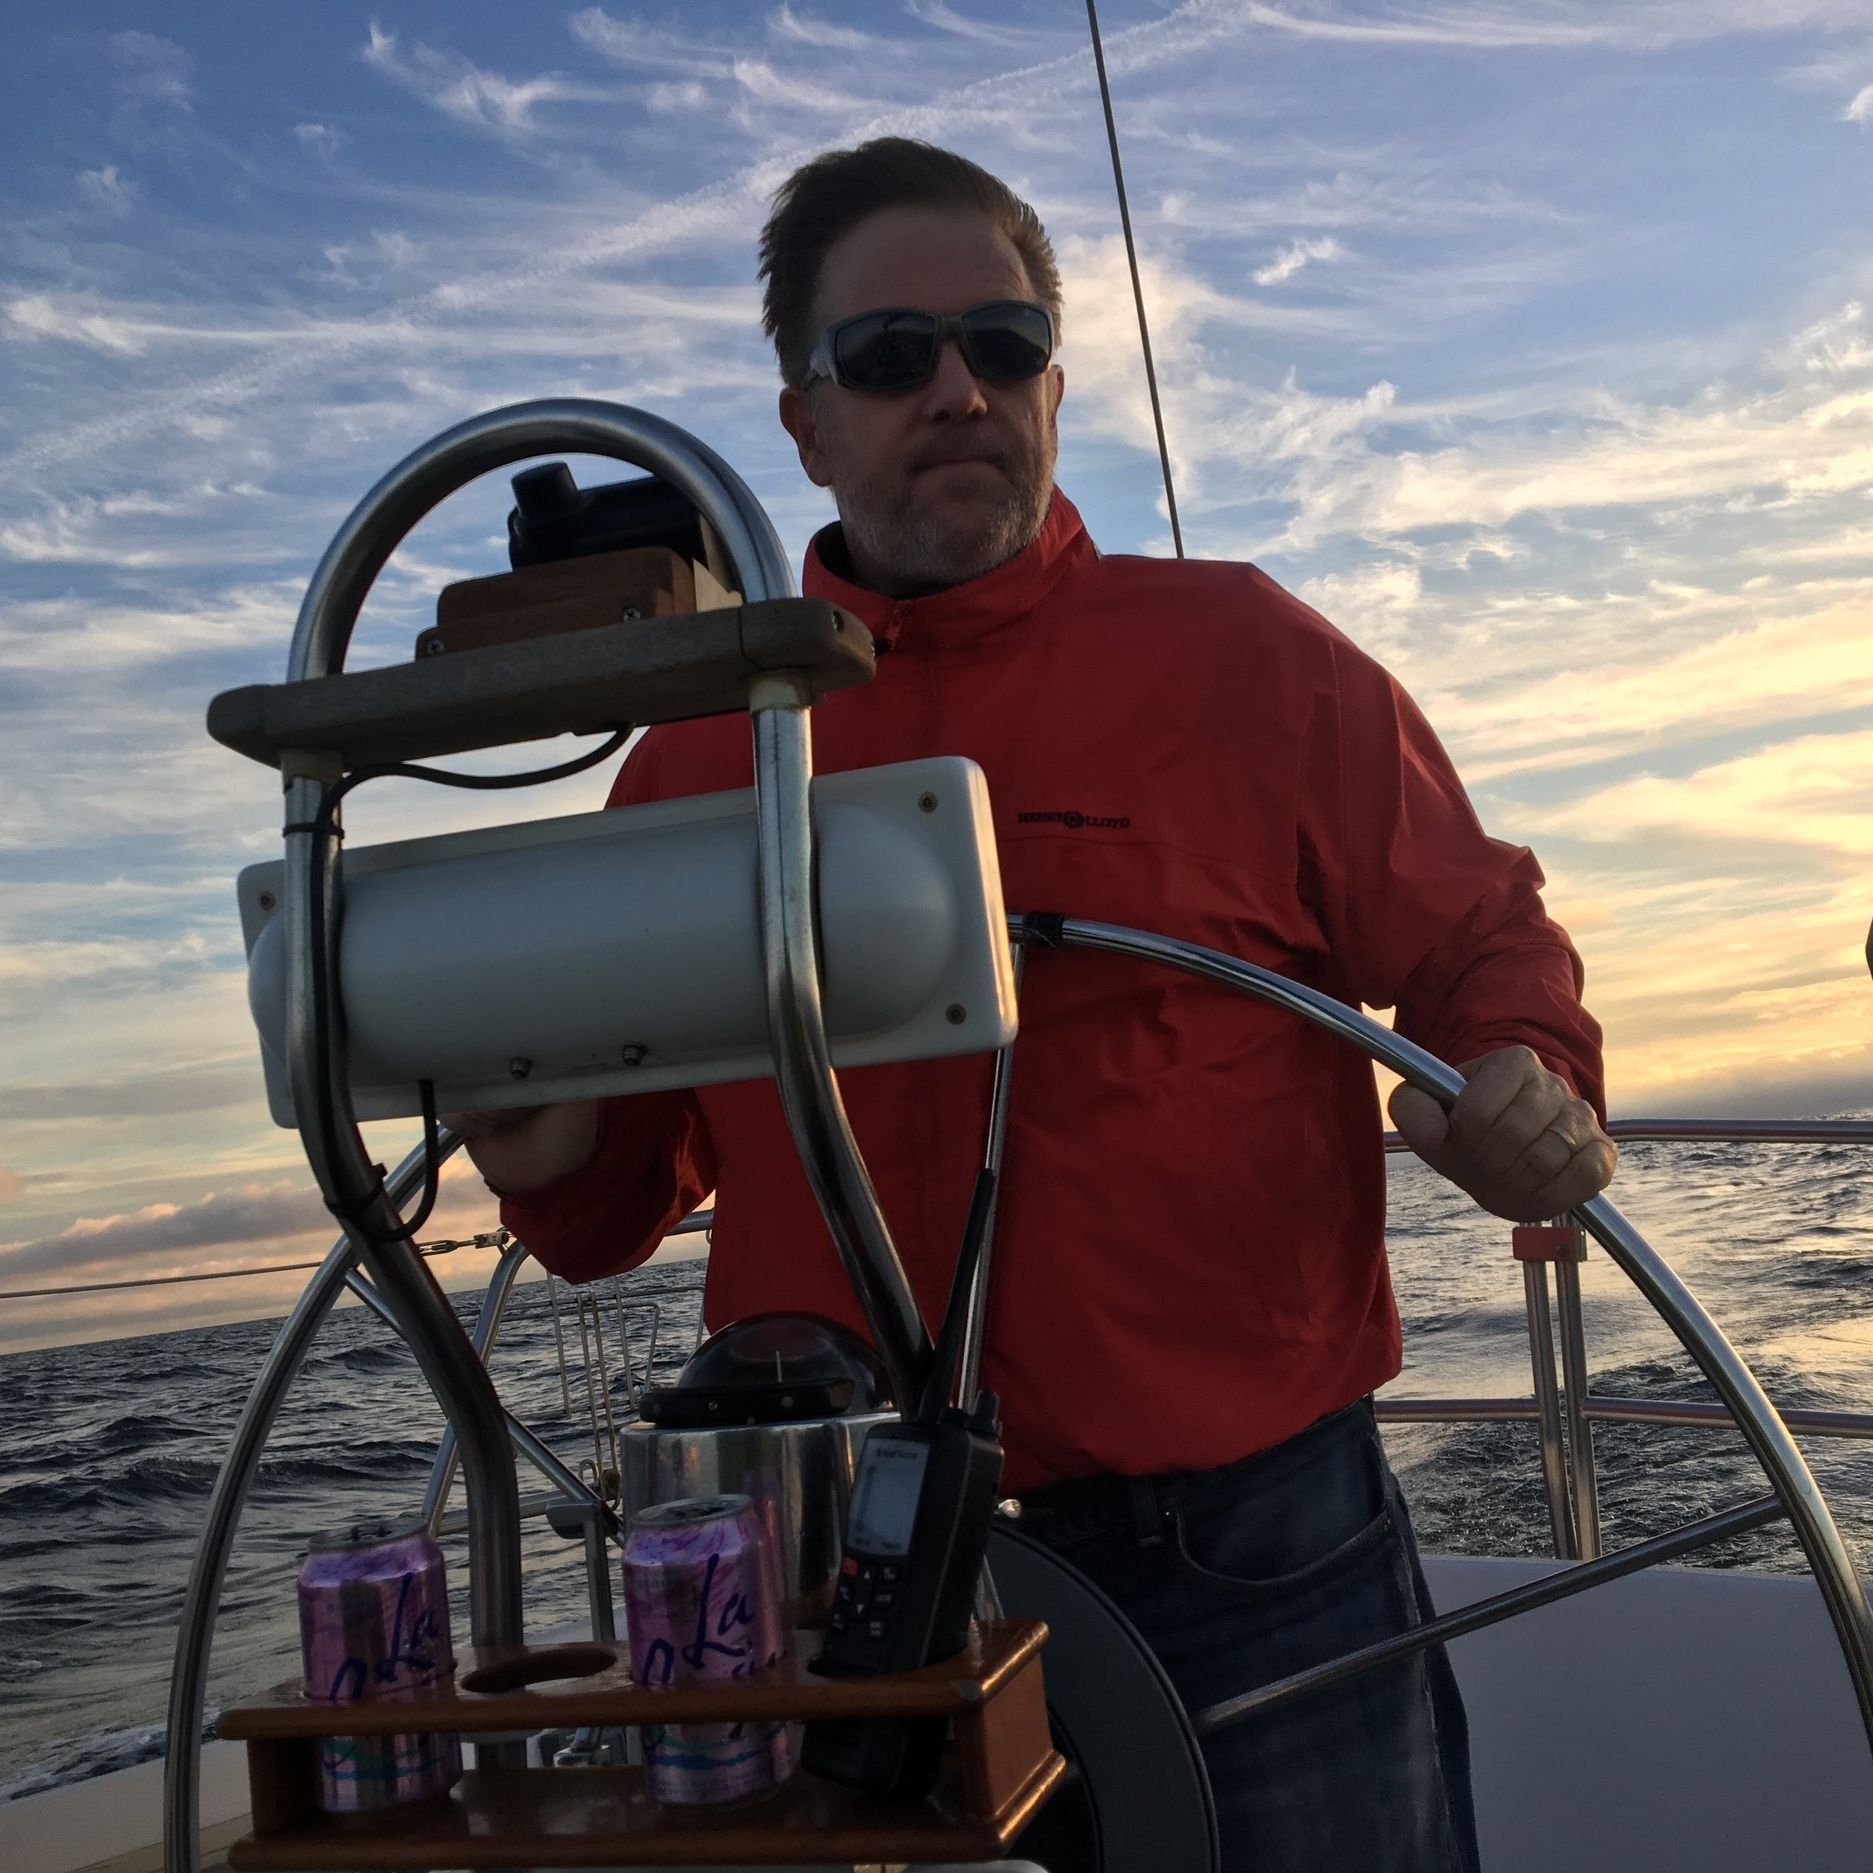 ADAM - Our Skipper is a US Coast Guard licensed Captain with many years of boating experience. Adam oversees our crew's training on the water and maintains RASA to the highest standard.